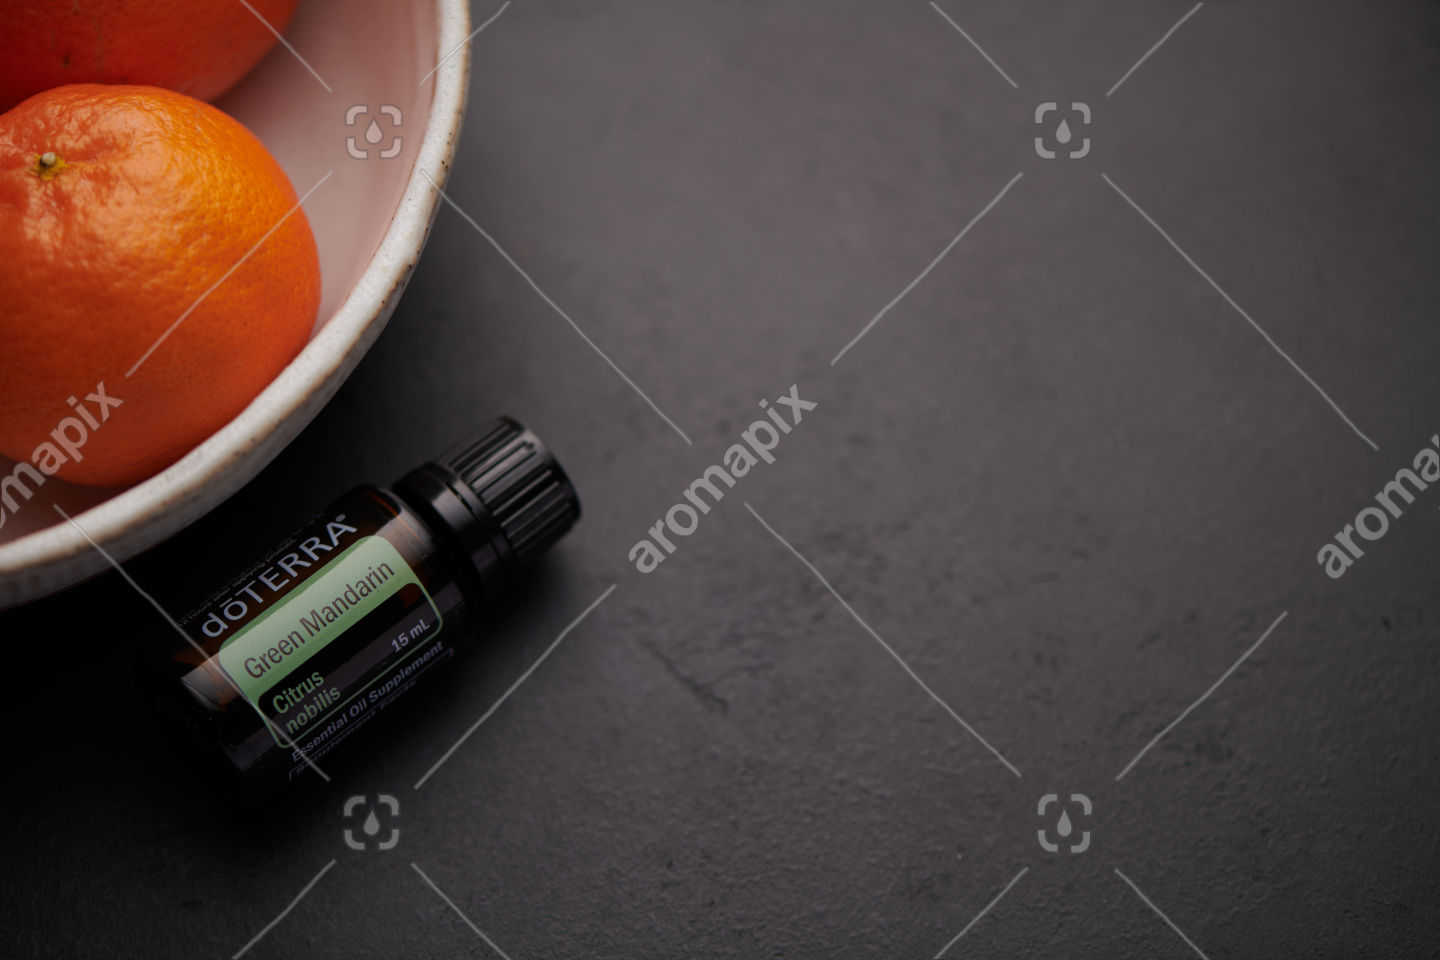 doTERRA Green Mandarin product and mandarins in white bowl